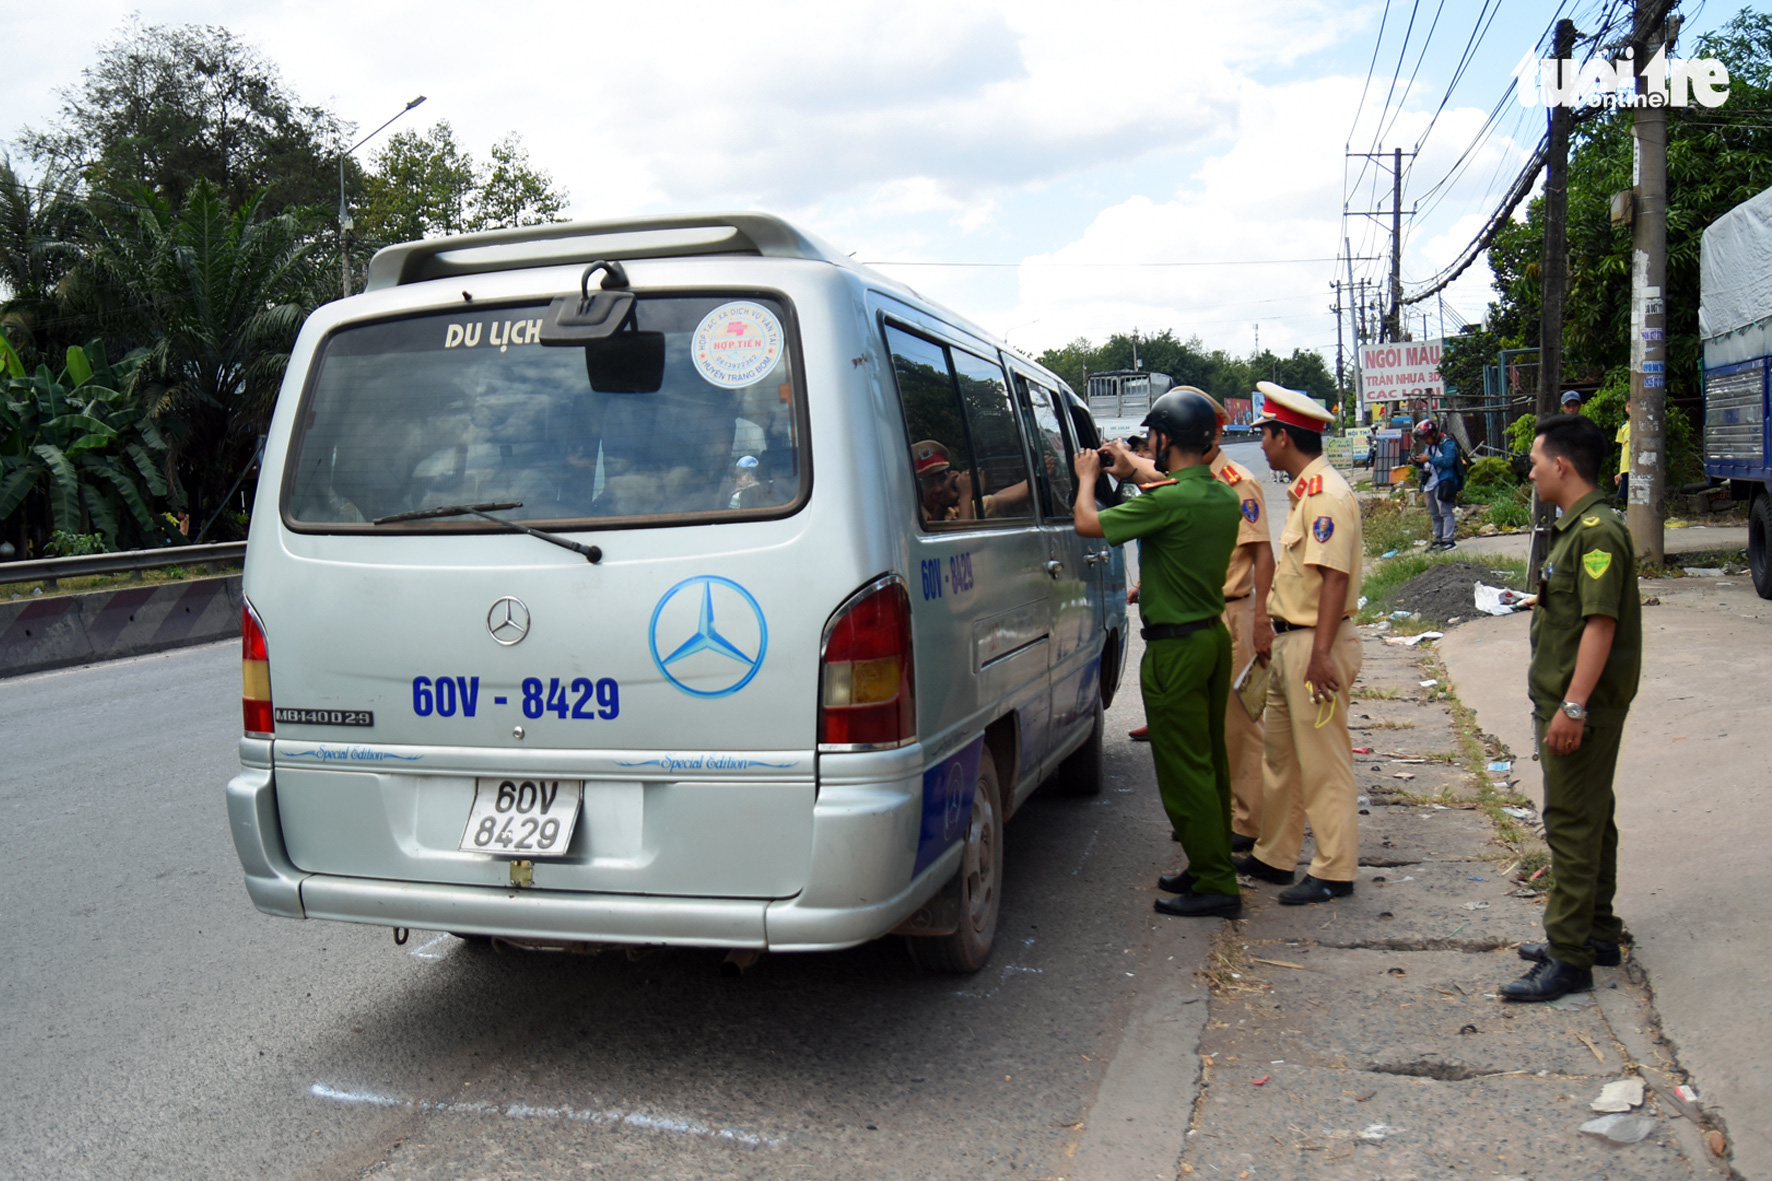 Officers examine the school van in Trang Bom District, Dong Nai Province on November 30, 2019. Photo: A Loc / Tuoi Tre